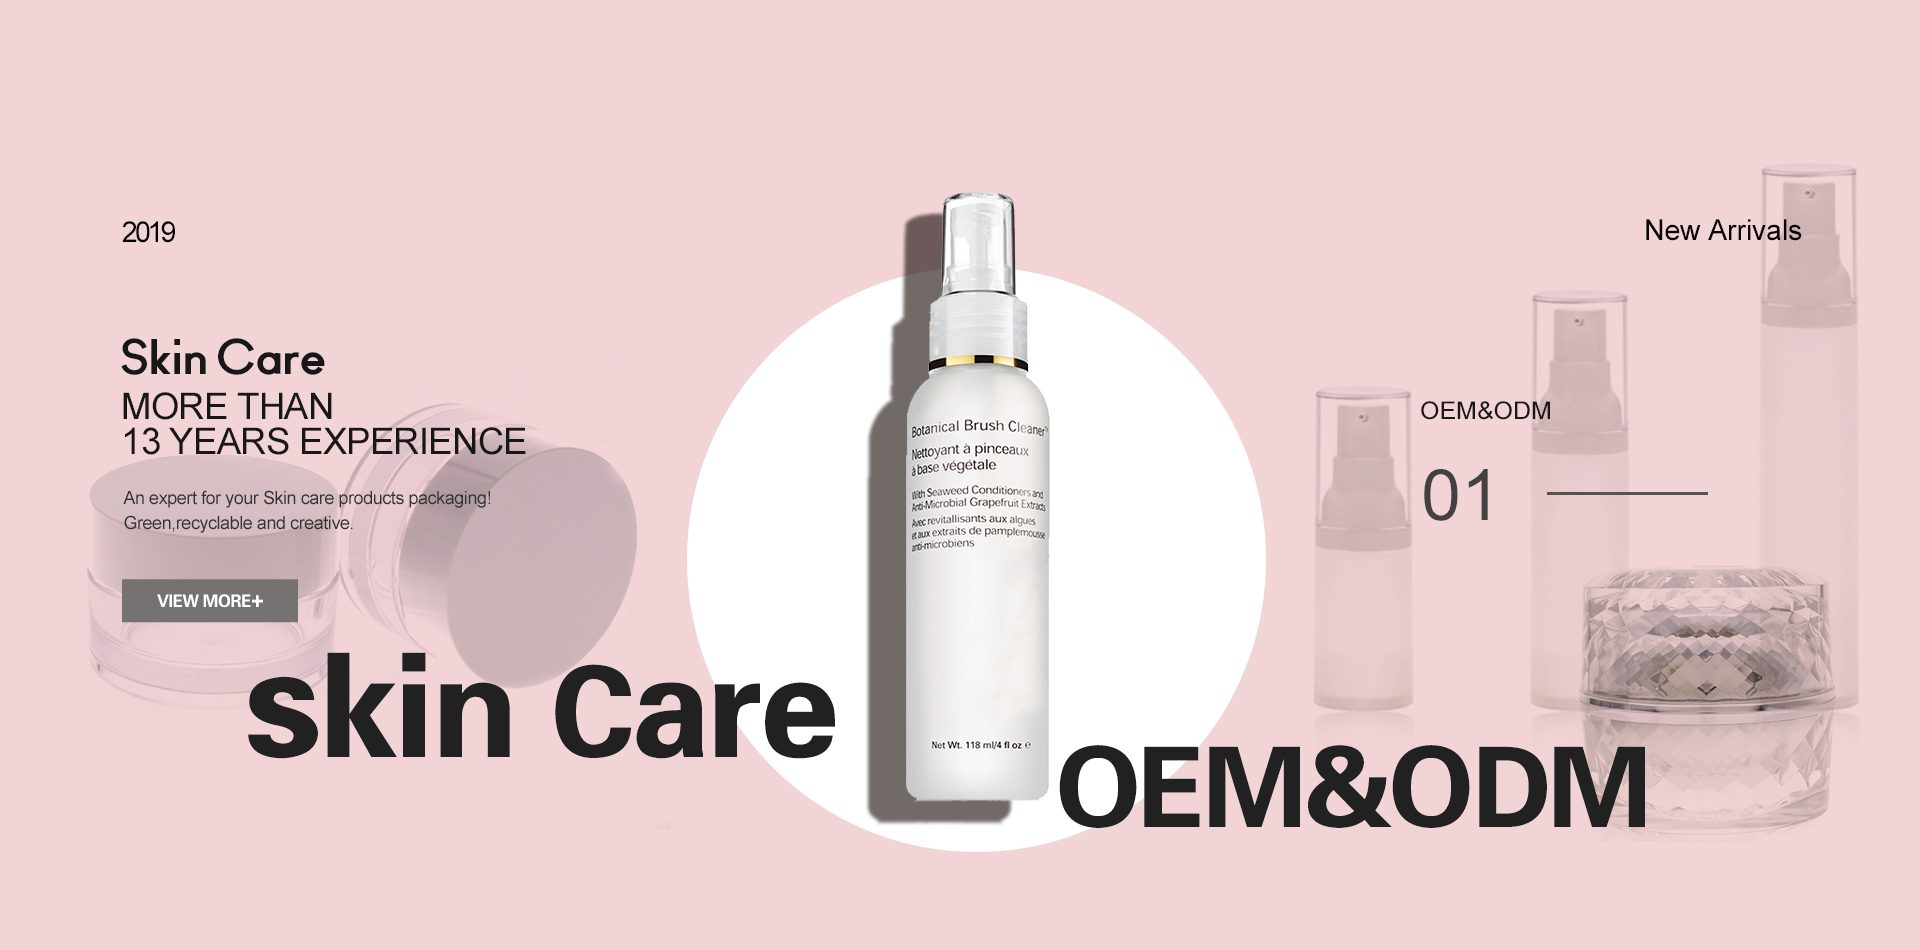 Well Dragon High Ability Of Oem Odm Design And Manufacture Experienced And Specially In Cosmeics Skin Care Series Packaging